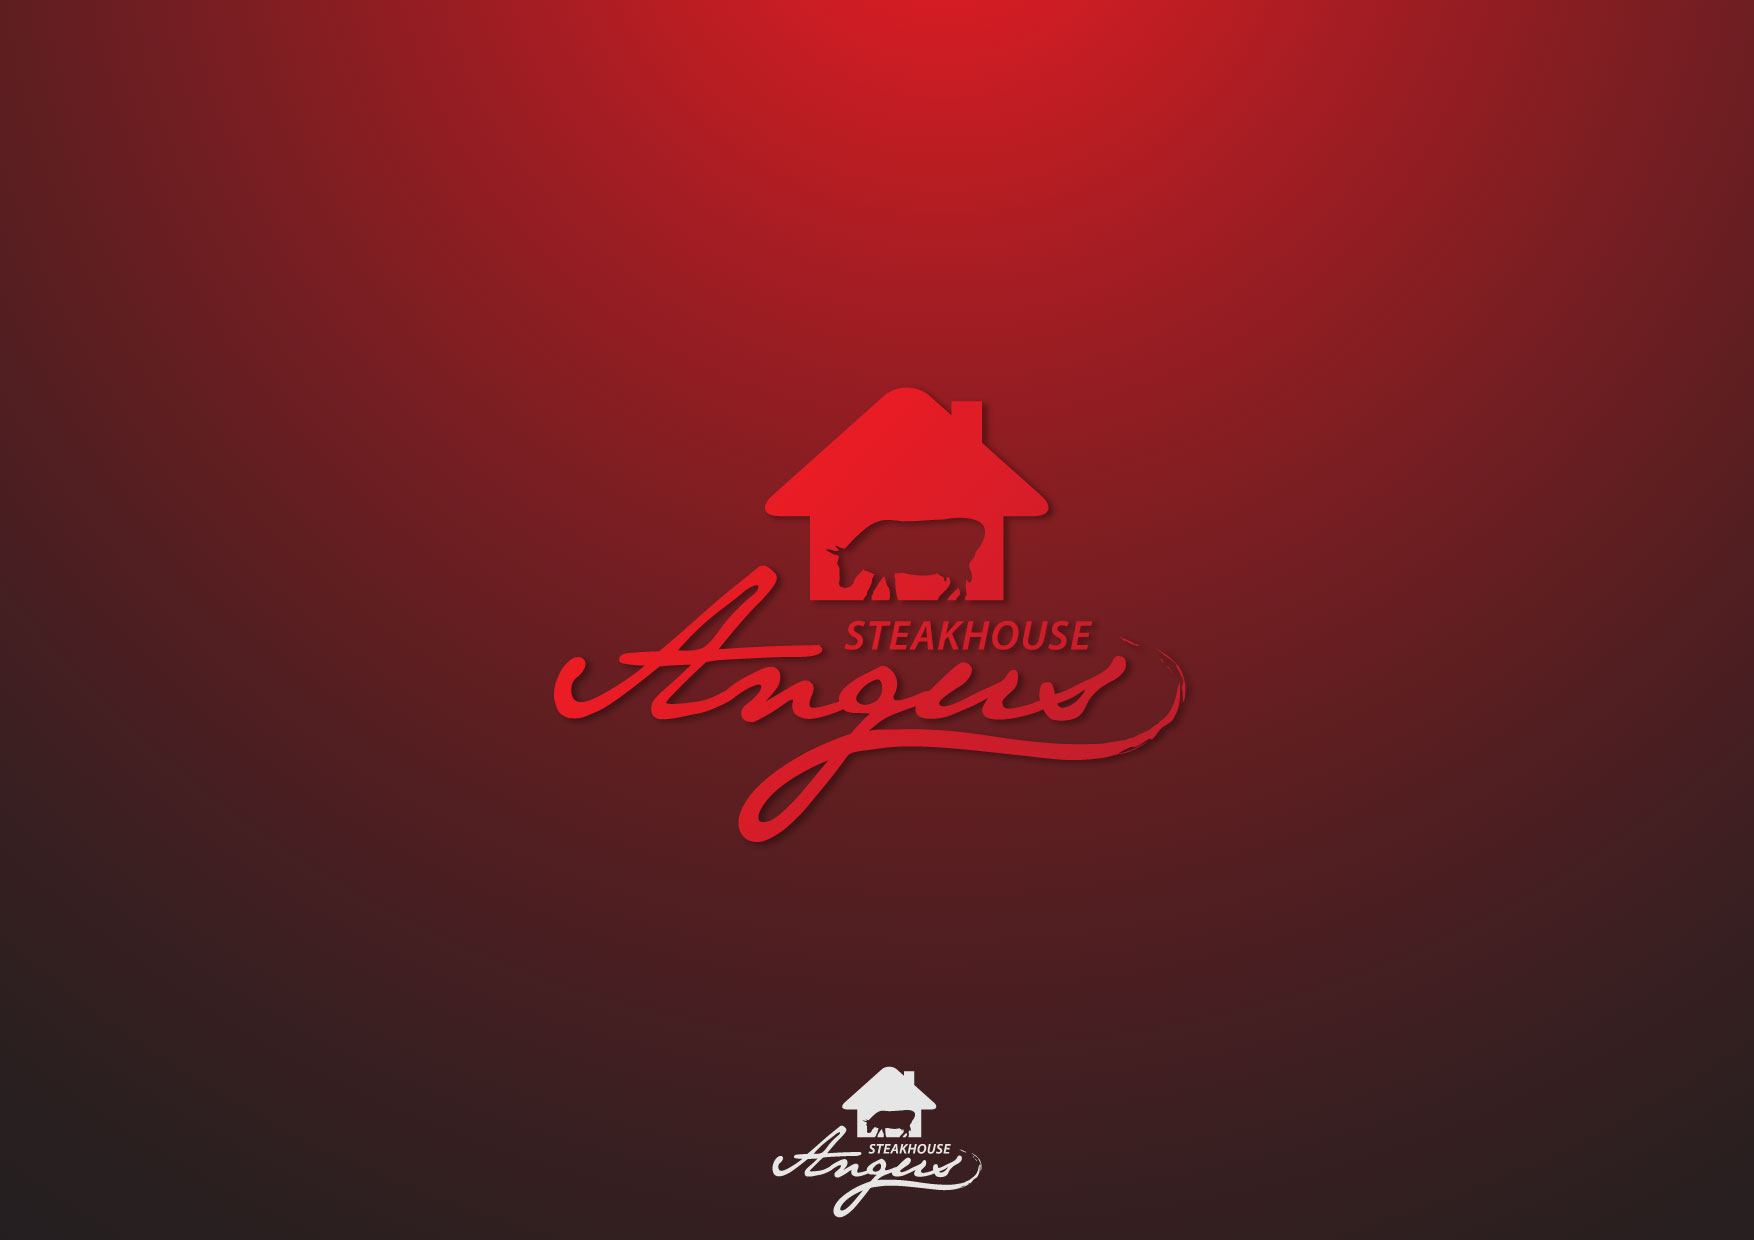 Logo Design by Nurgalih Destianto - Entry No. 46 in the Logo Design Contest Imaginative Custom Design for Angus Steakhouse.